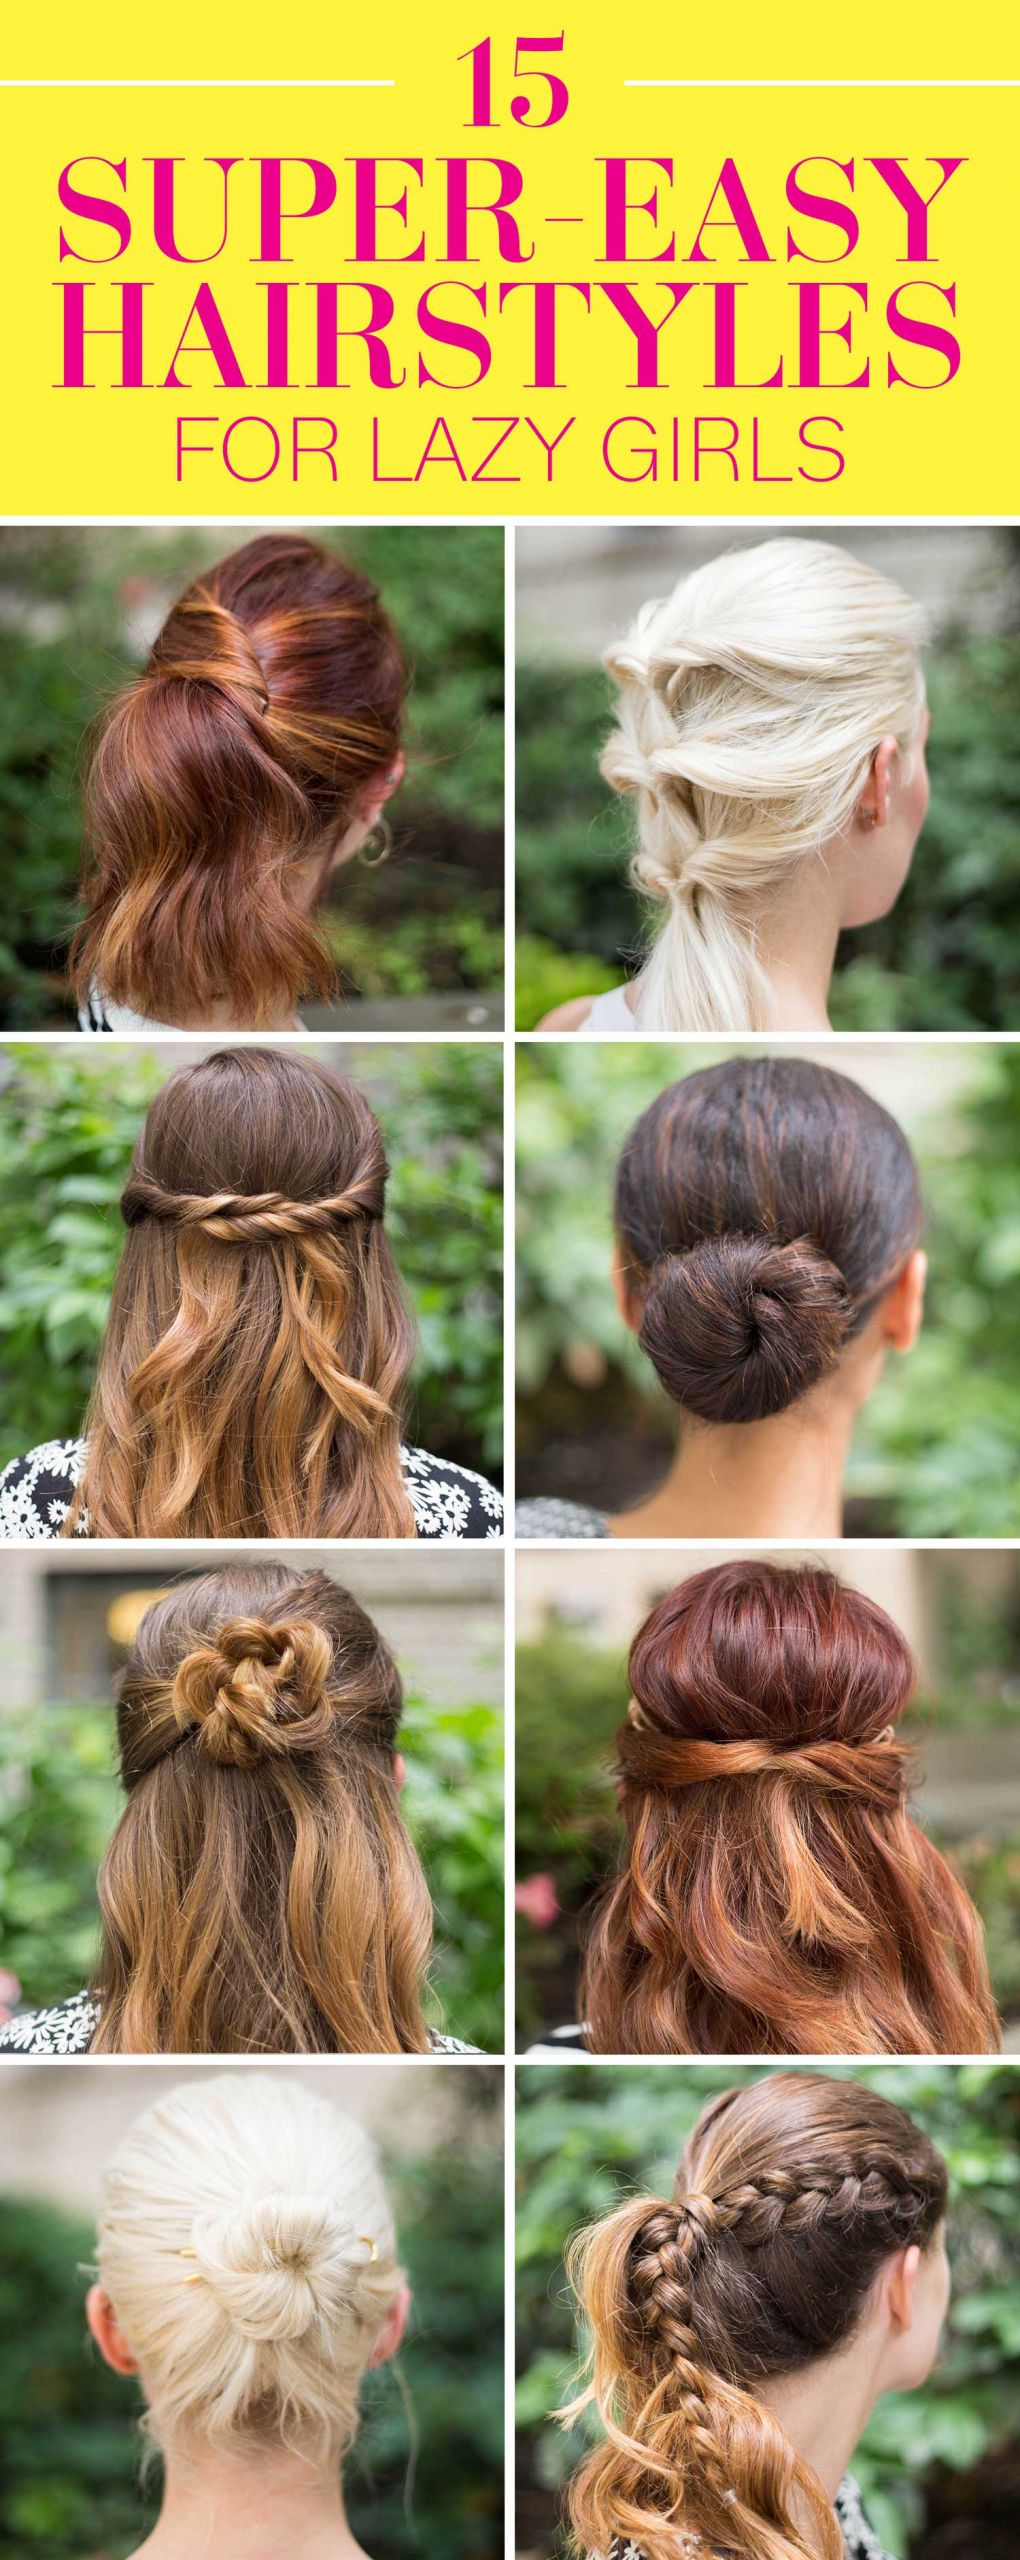 Cool Easy Hairstyles  15 Super Easy Hairstyles for Girls in 2016 Three Step